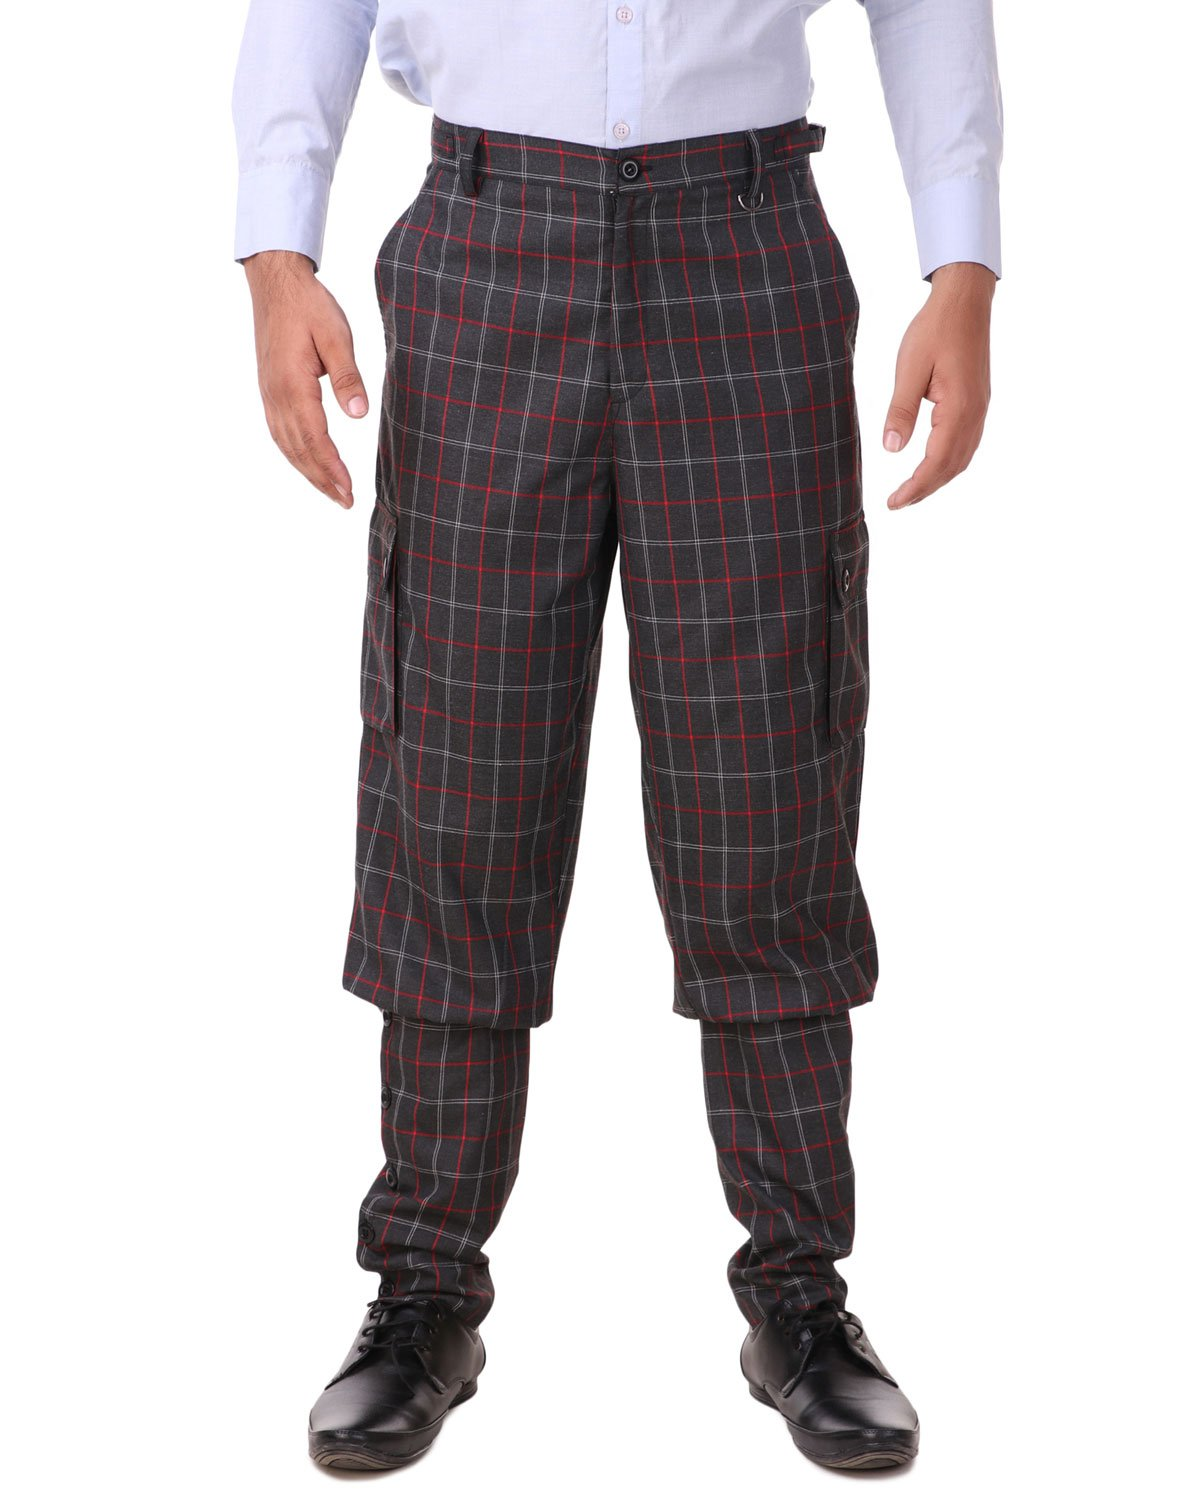 ThePirateDressing Steampunk Victorian Cosplay Costume Mens Airship 100% Cotton Pants Trousers C1348 (Black+ Red Check (100% Cotton Fabric)) (X-Large)